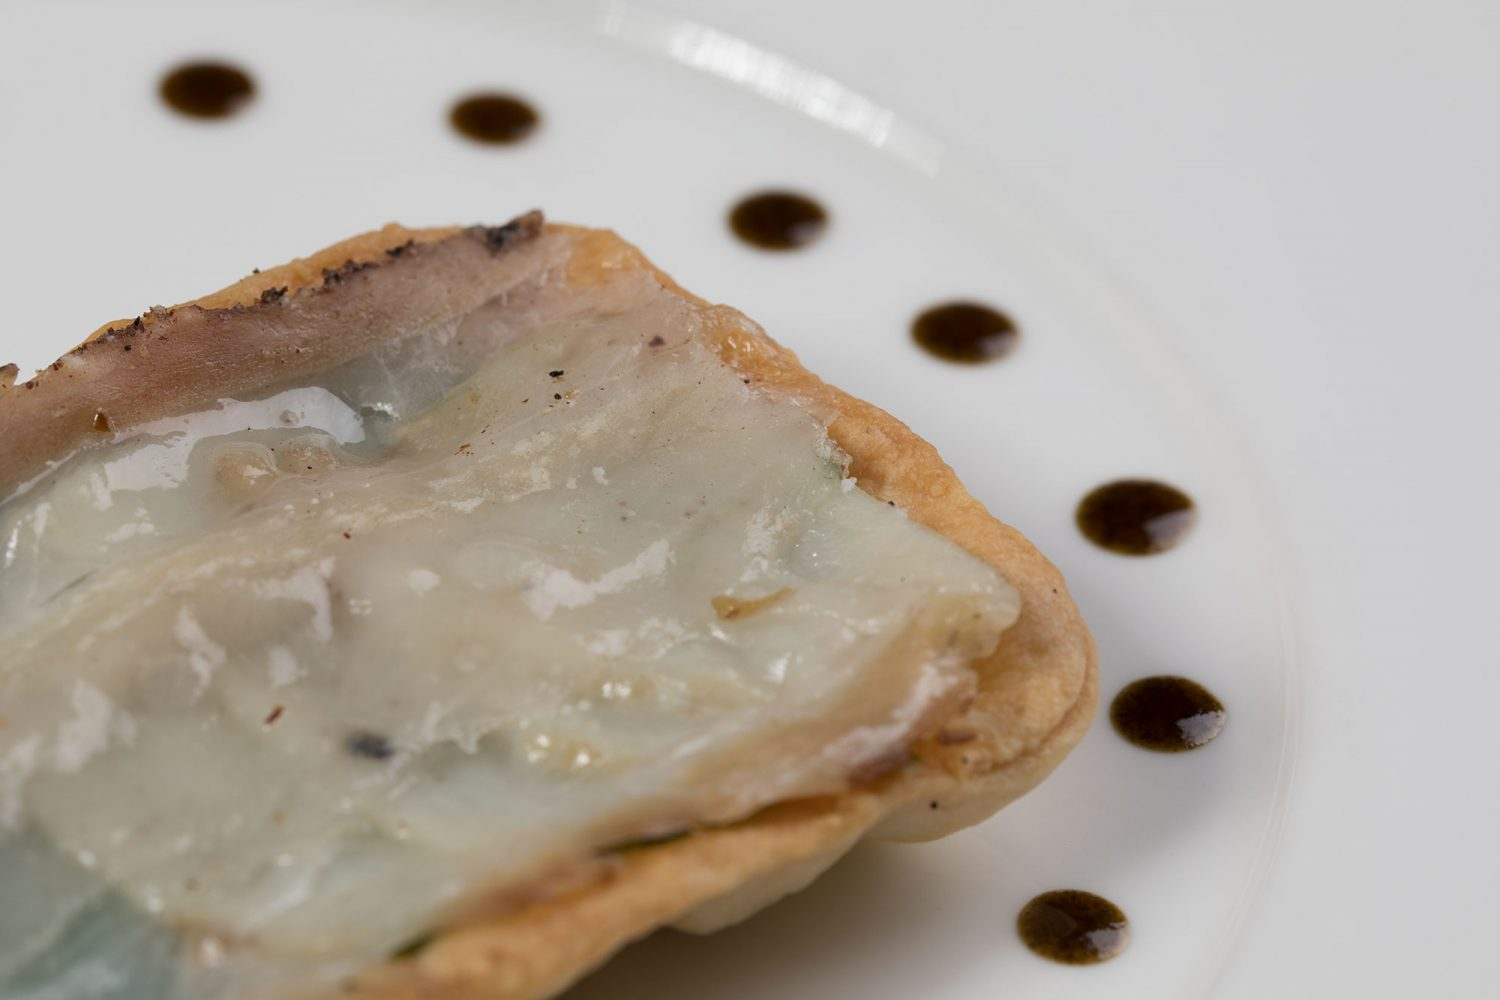 Food photographer Shanghai. Abalone photo